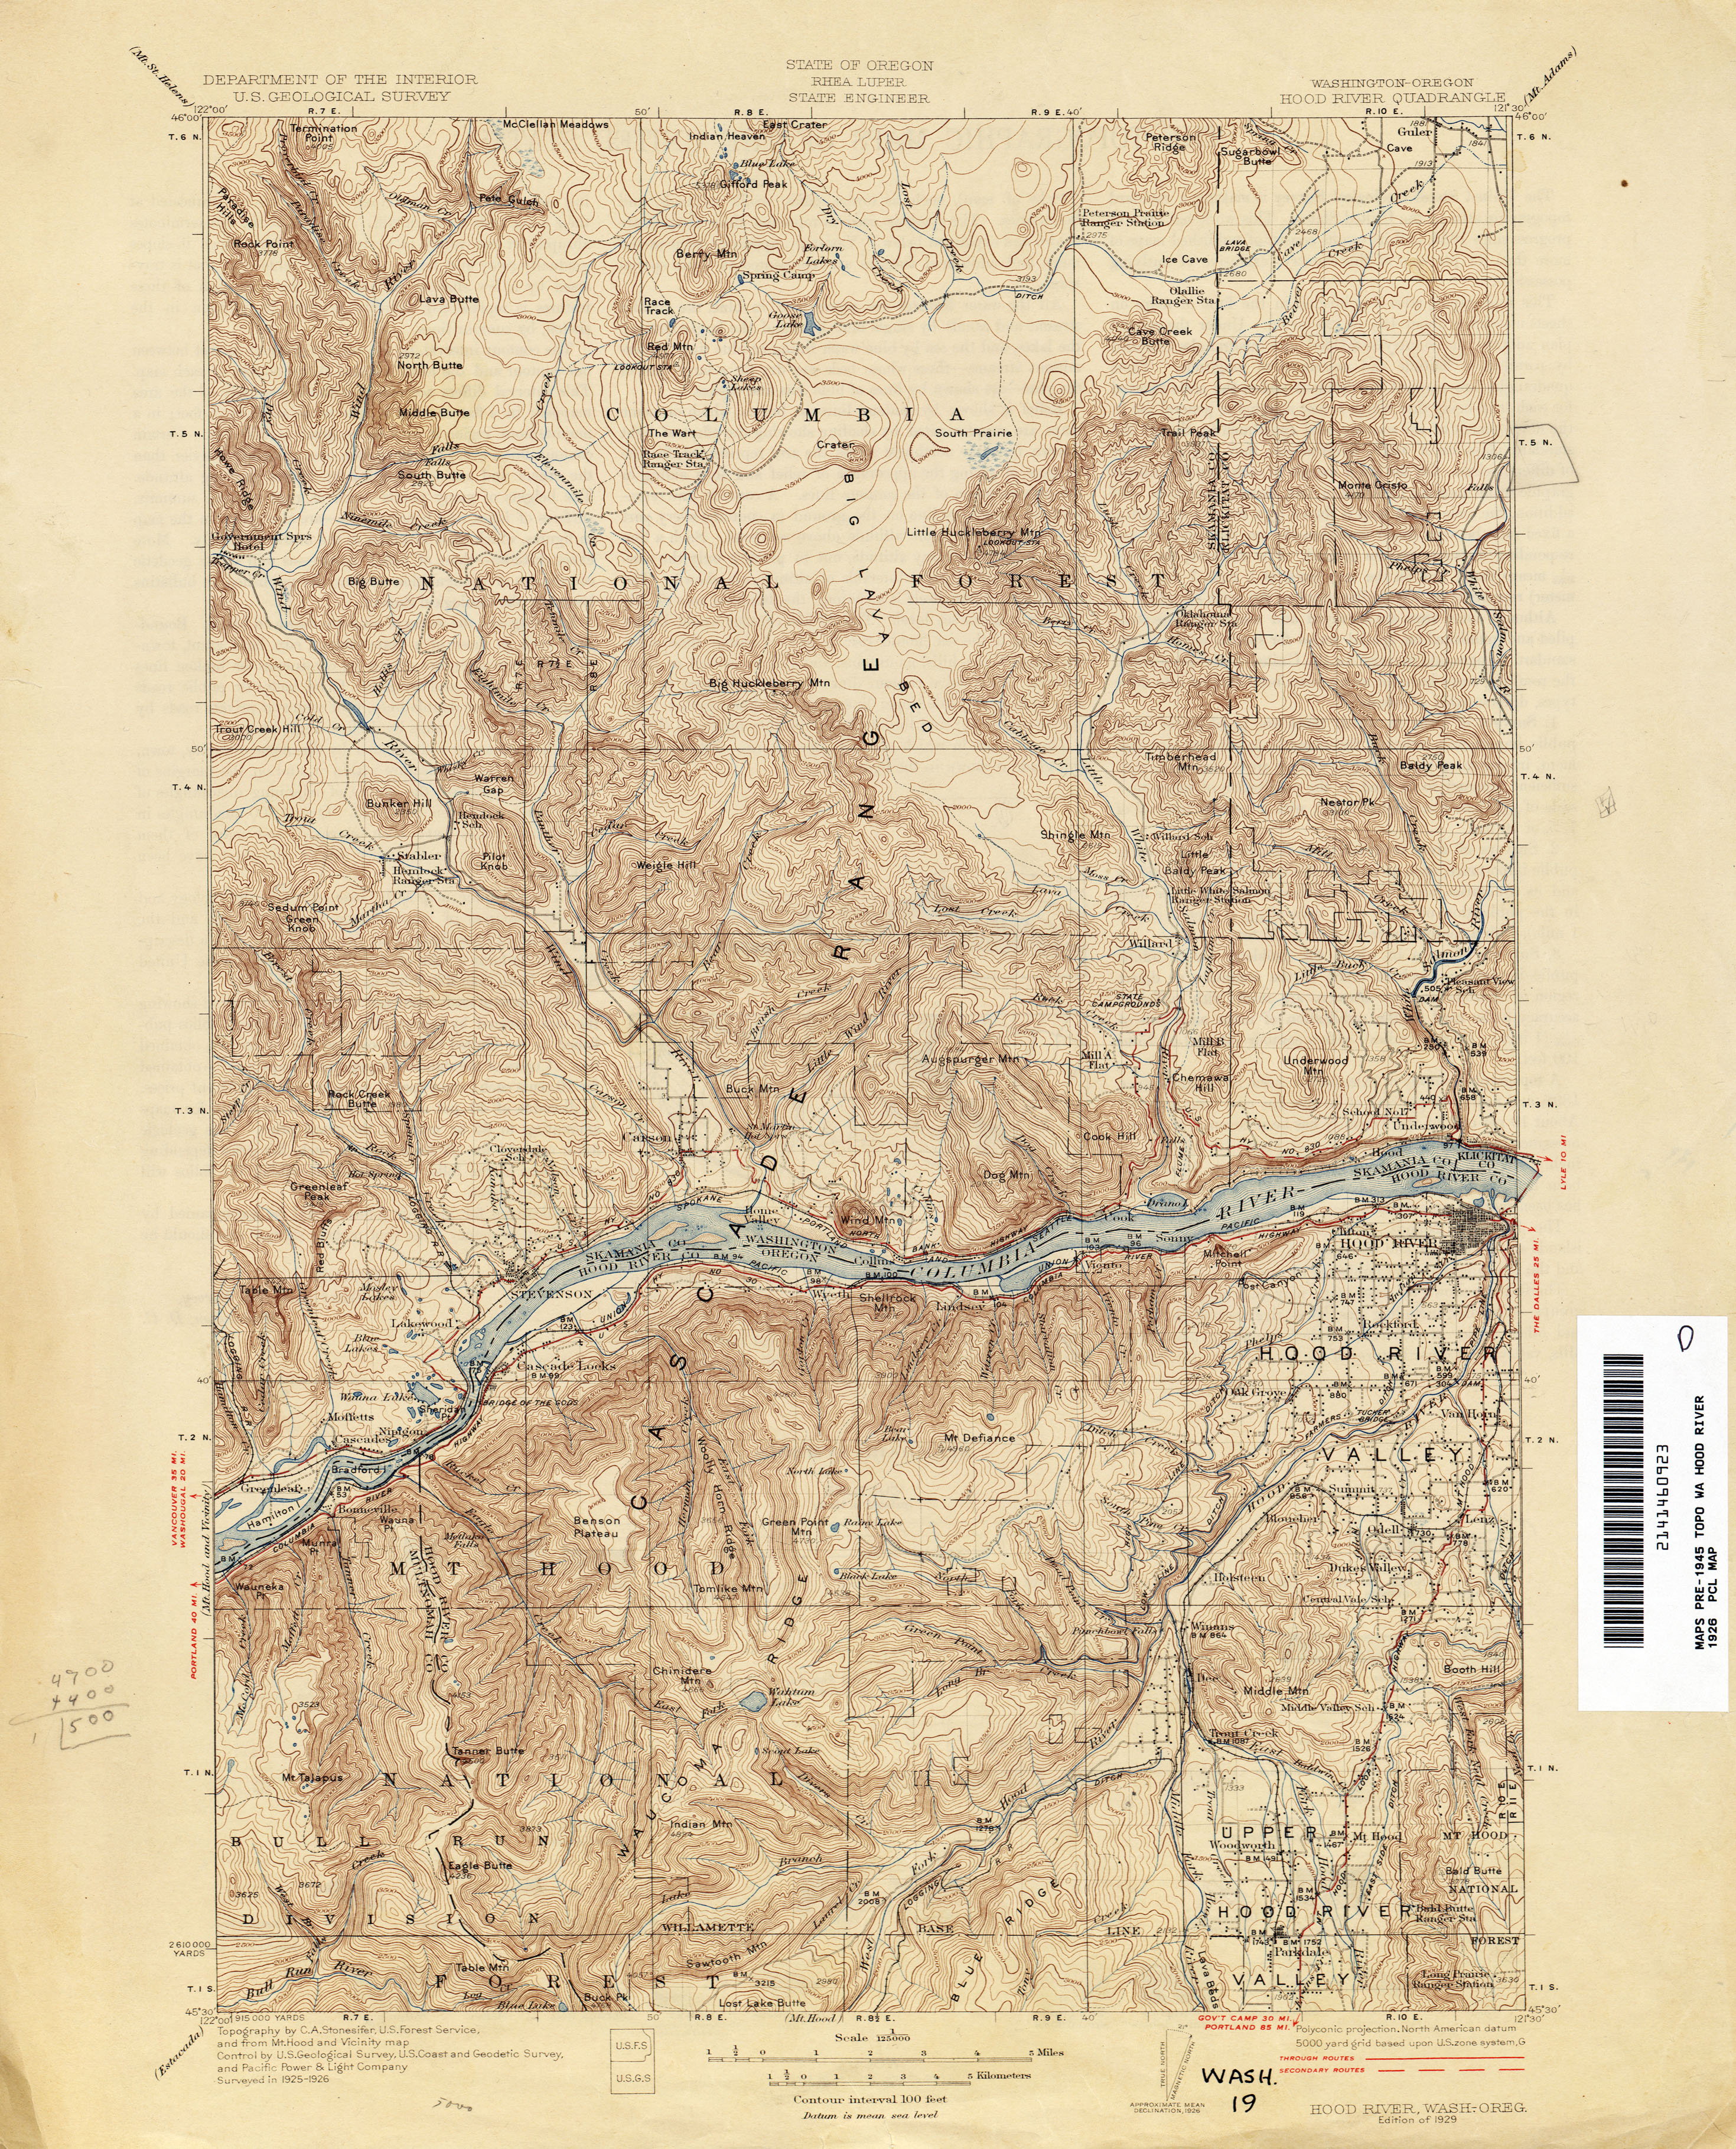 Mt St Helens Washington Map.Washington Historical Topographic Maps Perry Castaneda Map